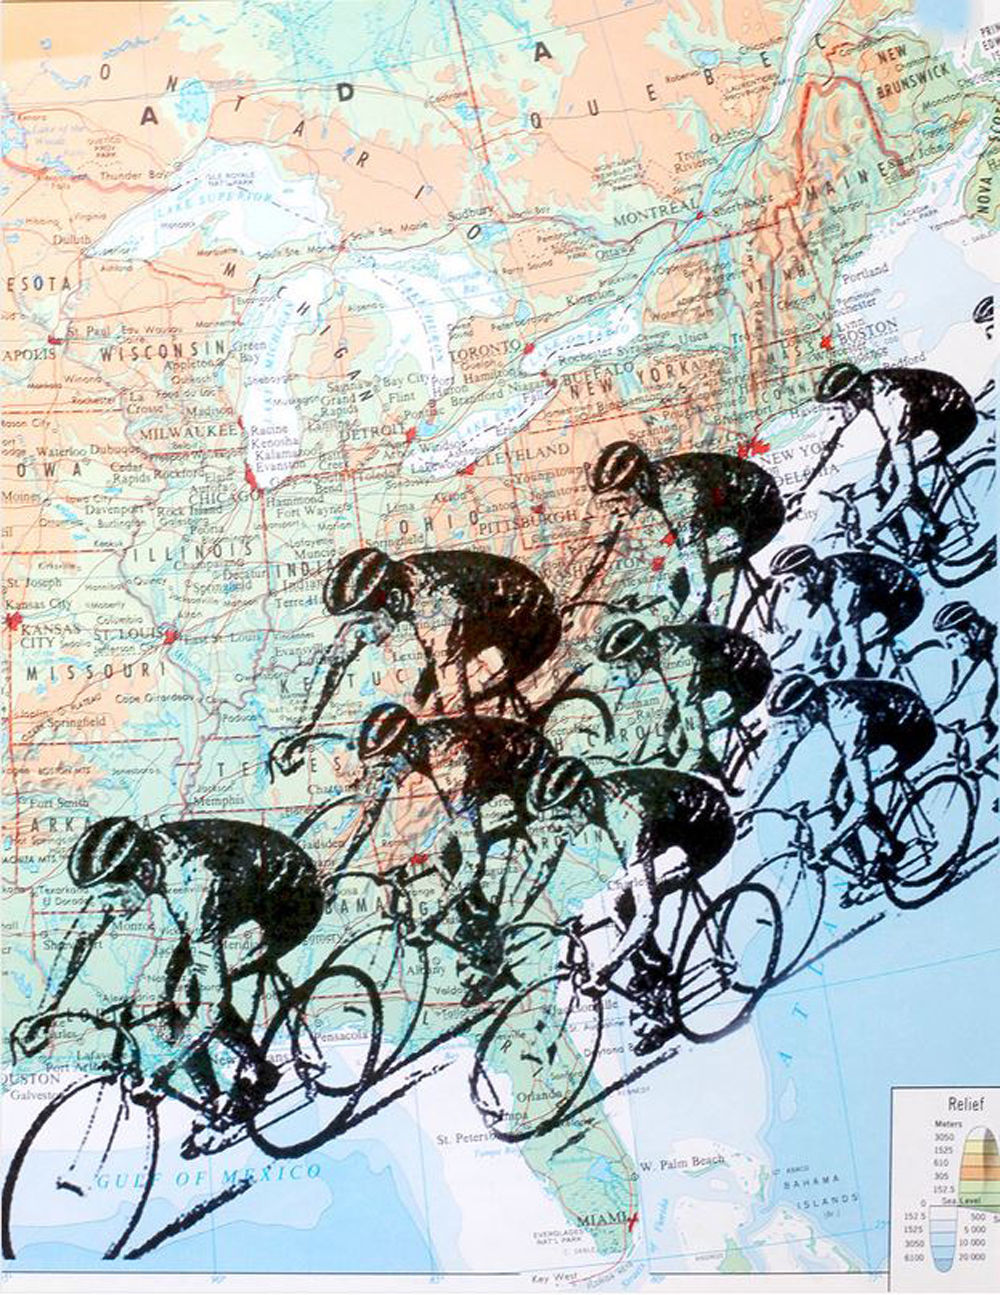 Art N Wordz Bike Cyclists Race Original Atlas Sheet Pop Art Print Wall/Desk Art